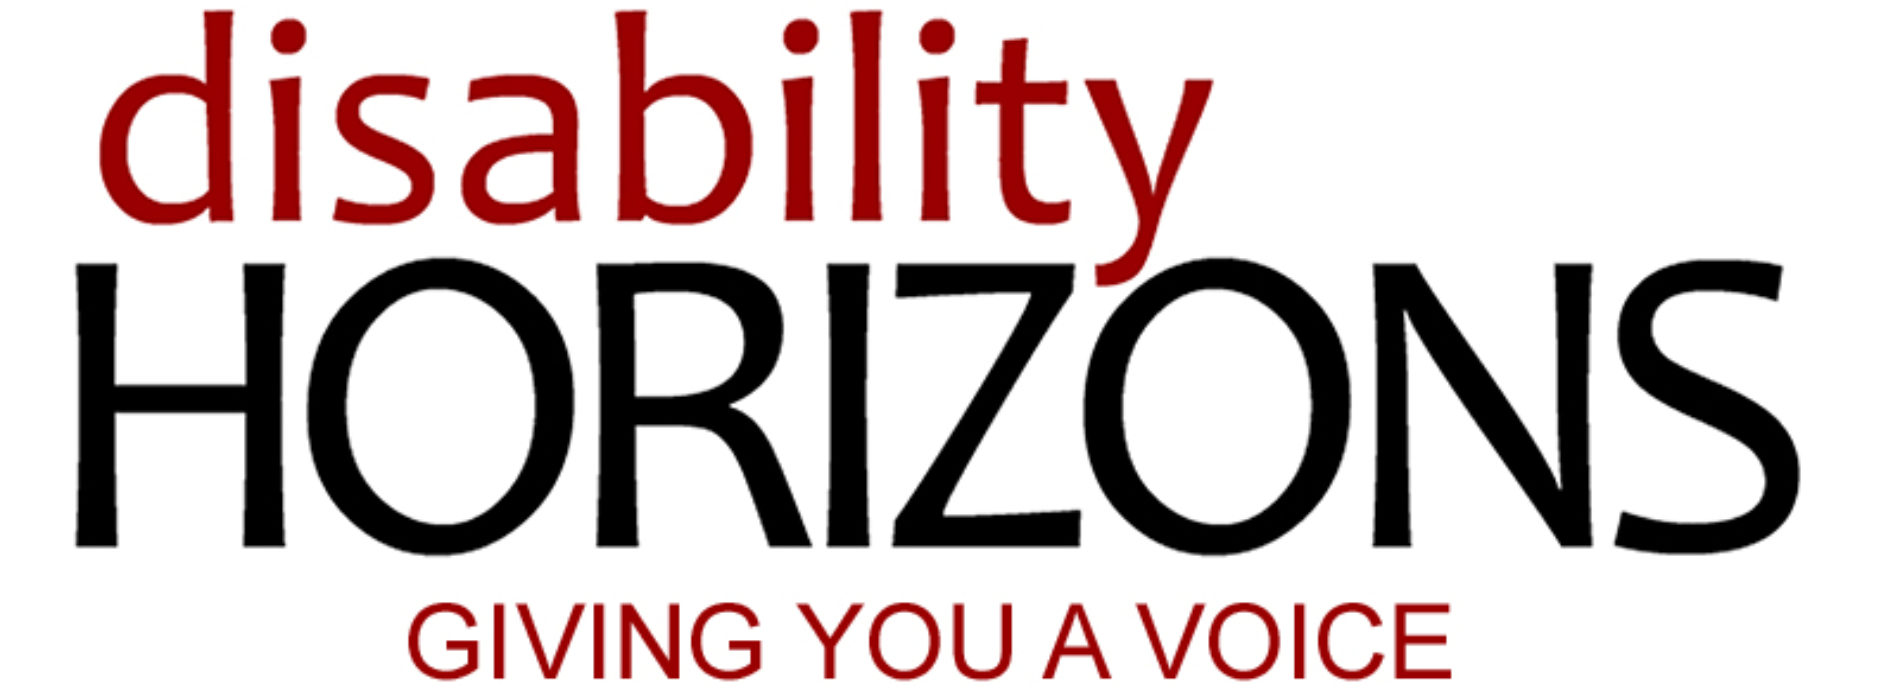 About Disability Horizons